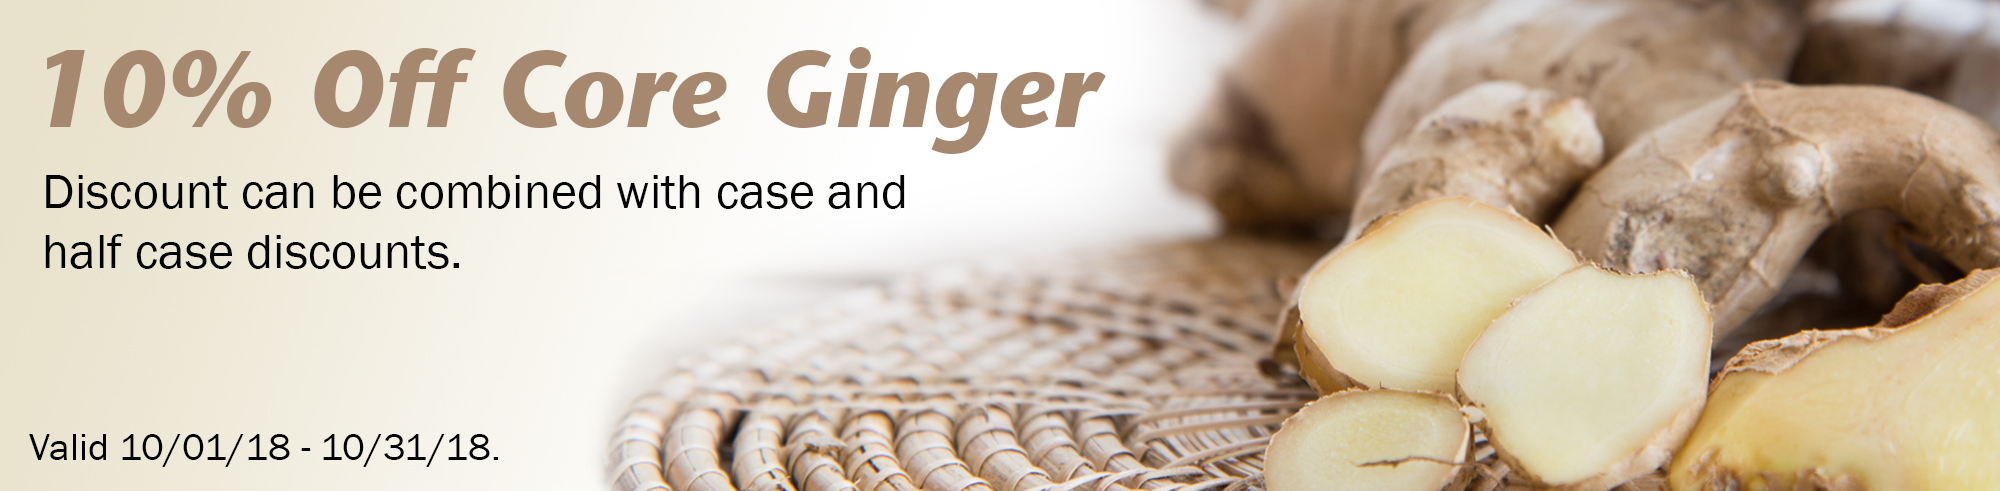 Core Ginger 10% Off